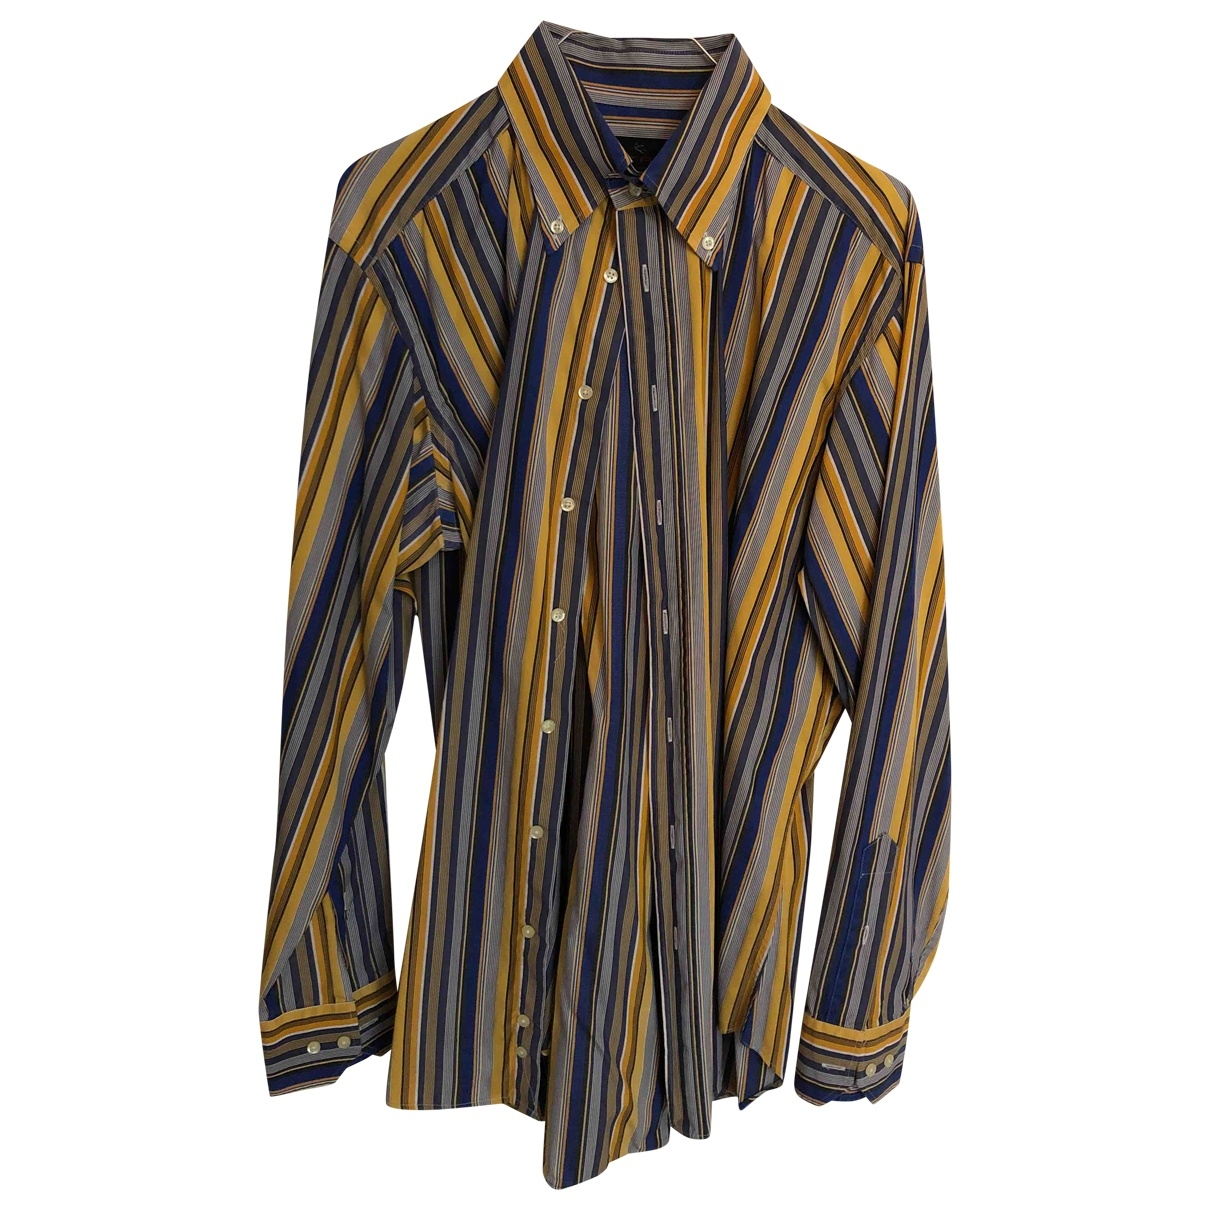 Etro \N Yellow Cotton Shirts for Men 41 EU (tour de cou / collar)